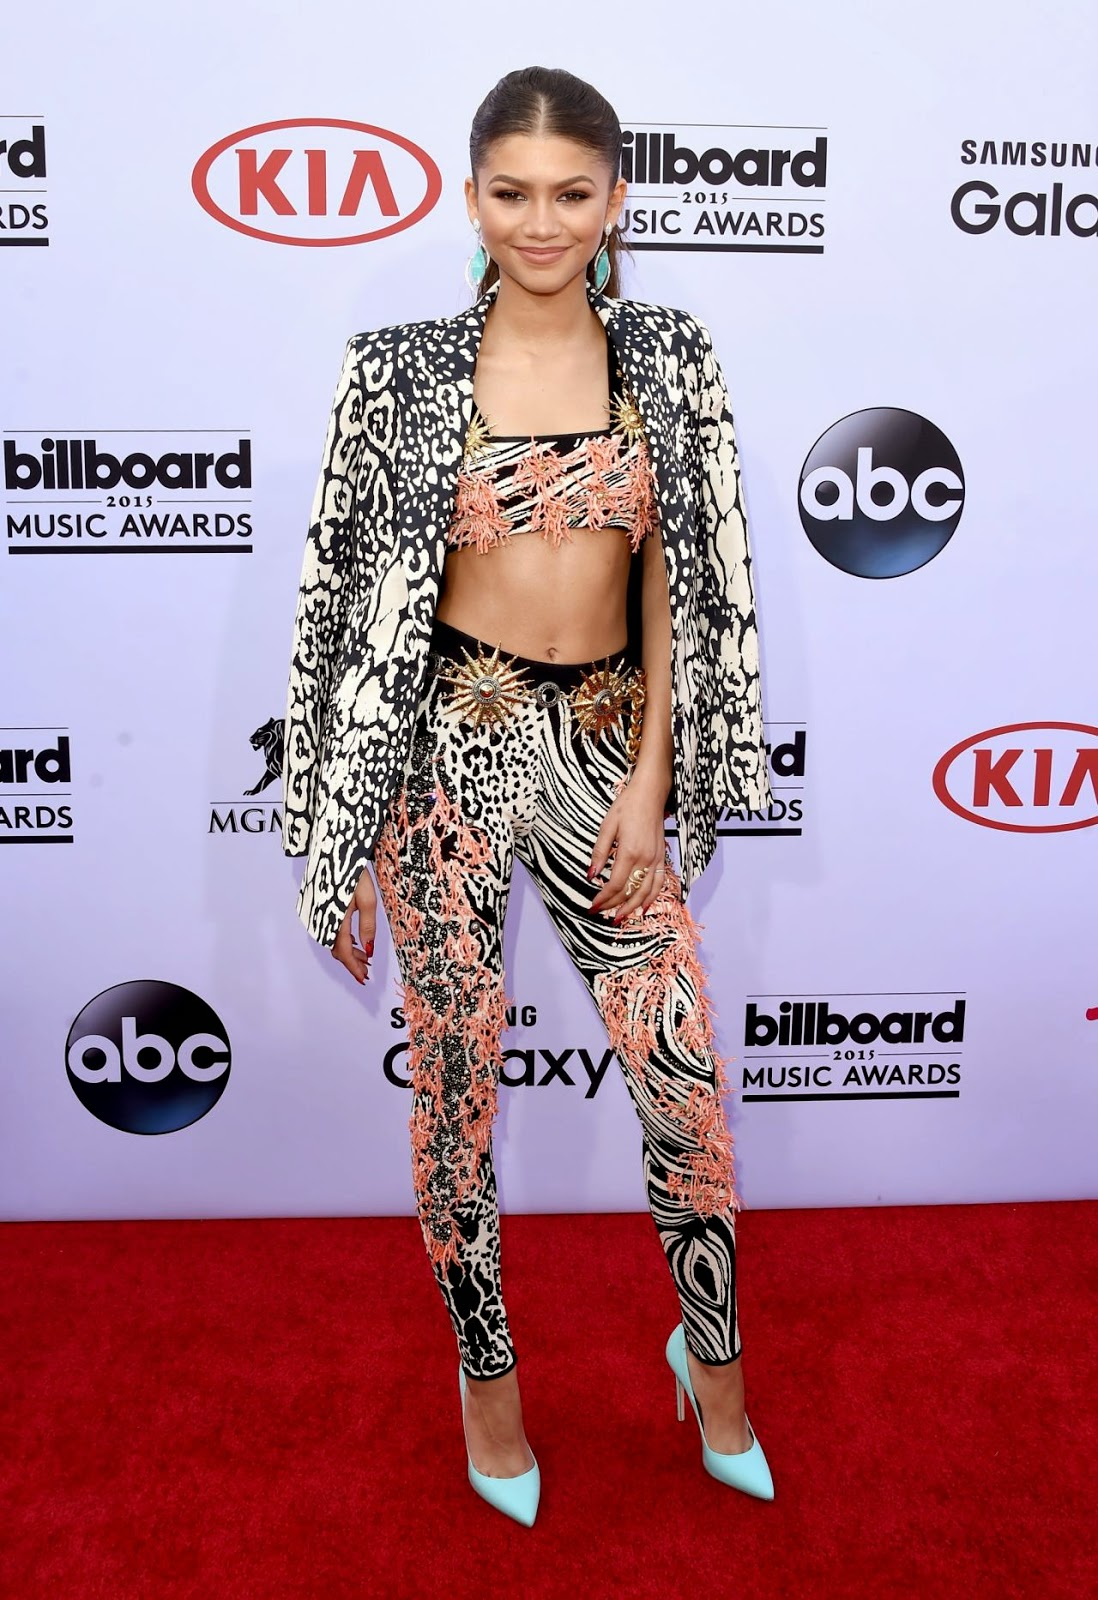 Zendaya flaunts abs in a bralet at the 2015 Billboard Music Awards